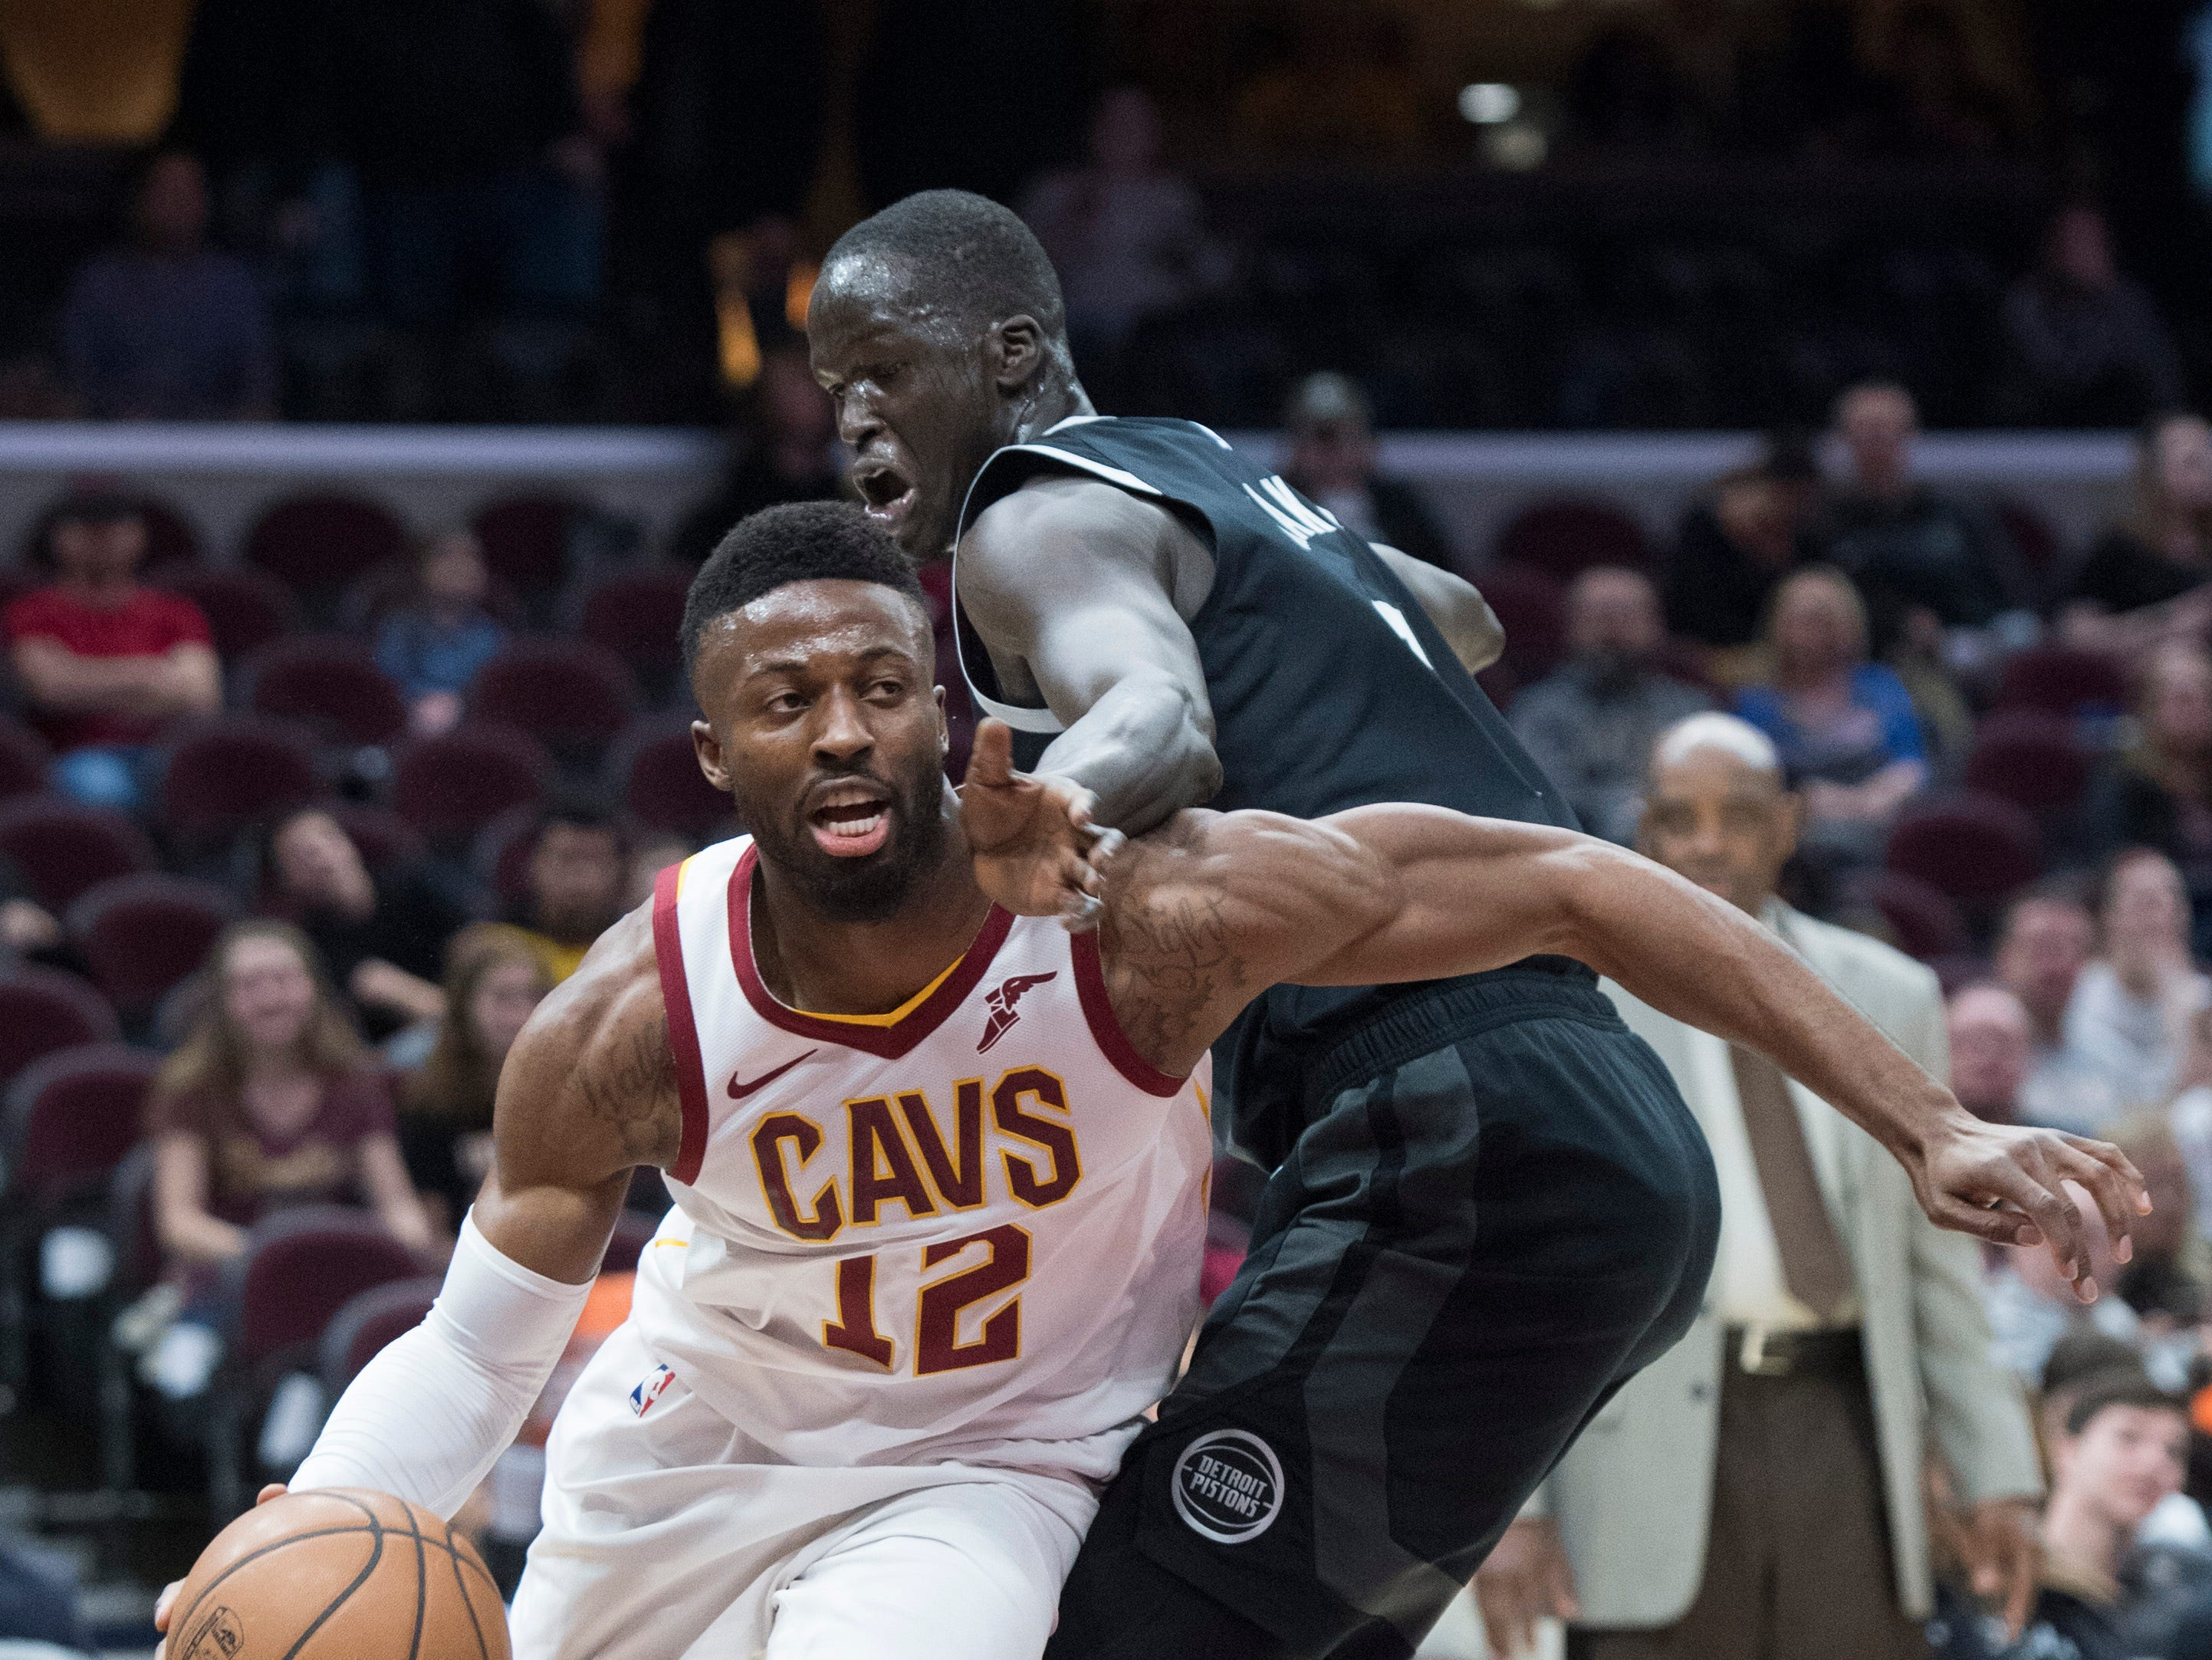 Cleveland Cavaliers' guard David Nwaba drives to the basket against Detroit Pistons' forward Thon Maker, from Australia, in the first half of an NBA basketball game.